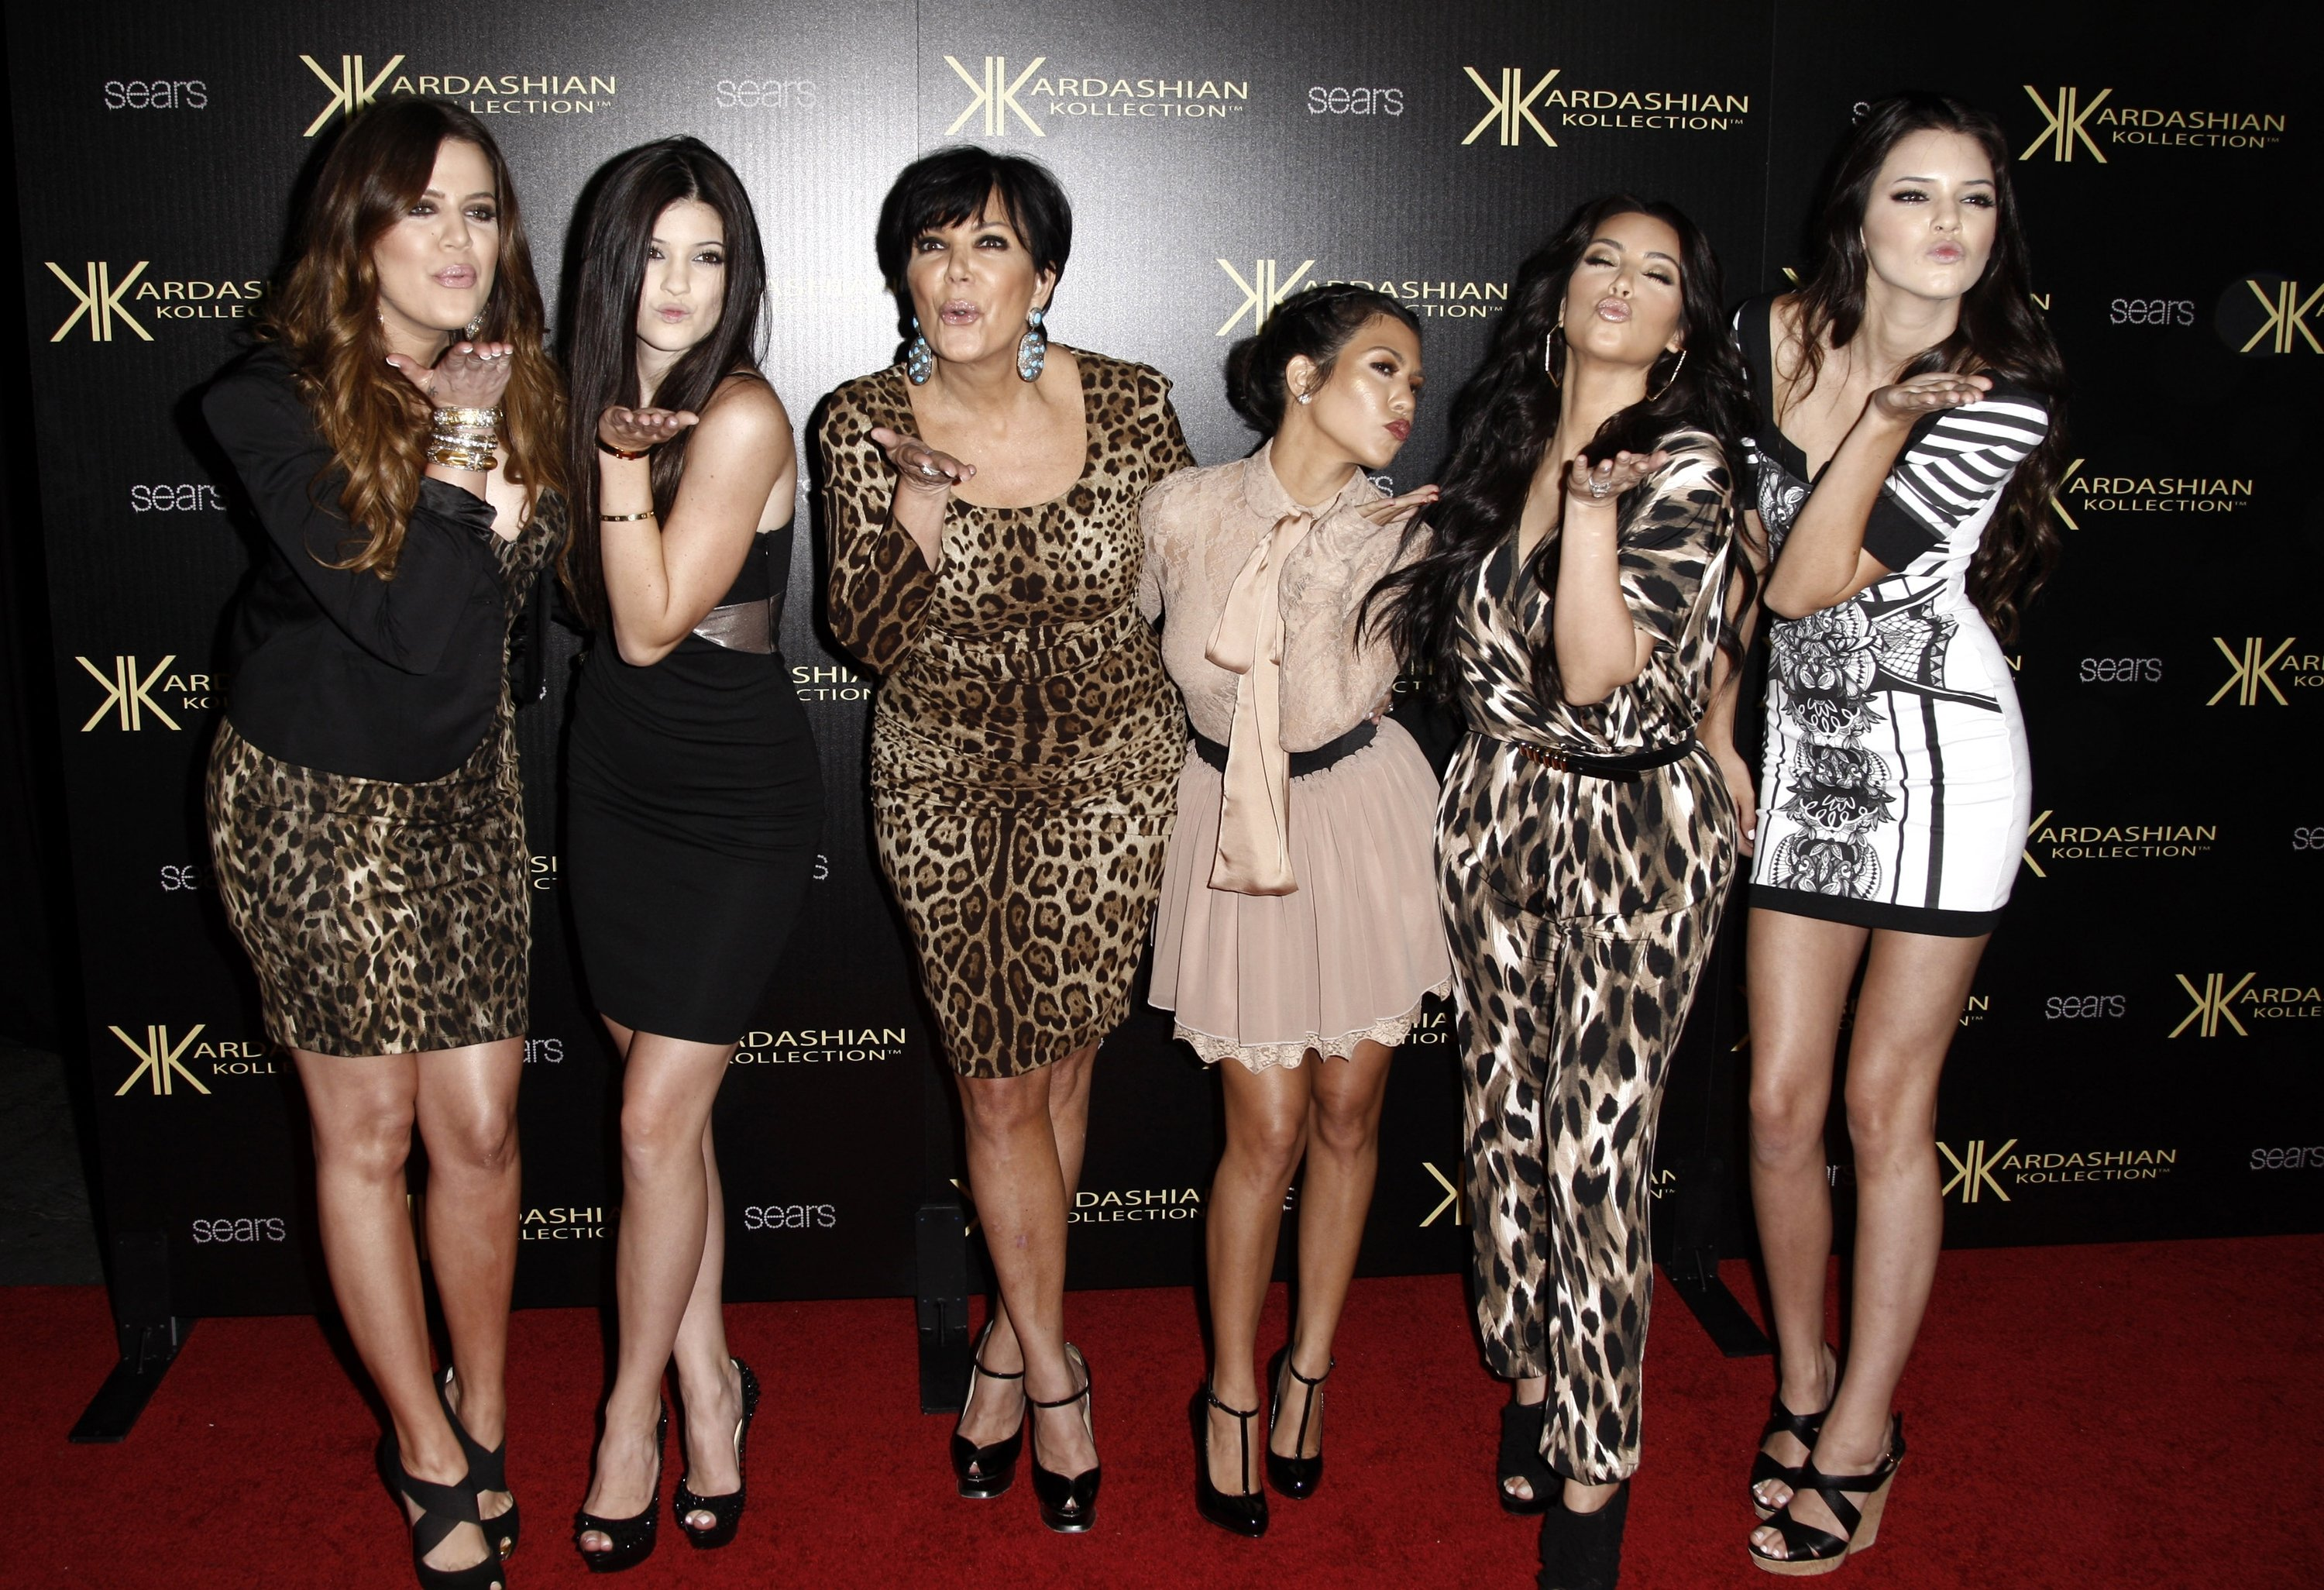 From left: Khloe Kardashian, Kylie Jenner, Kris Jenner, Kourtney Kardashian, Kim Kardashian and Kendall Jenner arrive at the Kardashian Kollection launch party in Los Angeles, Aug. 17, 2011. (AP PHOTO)